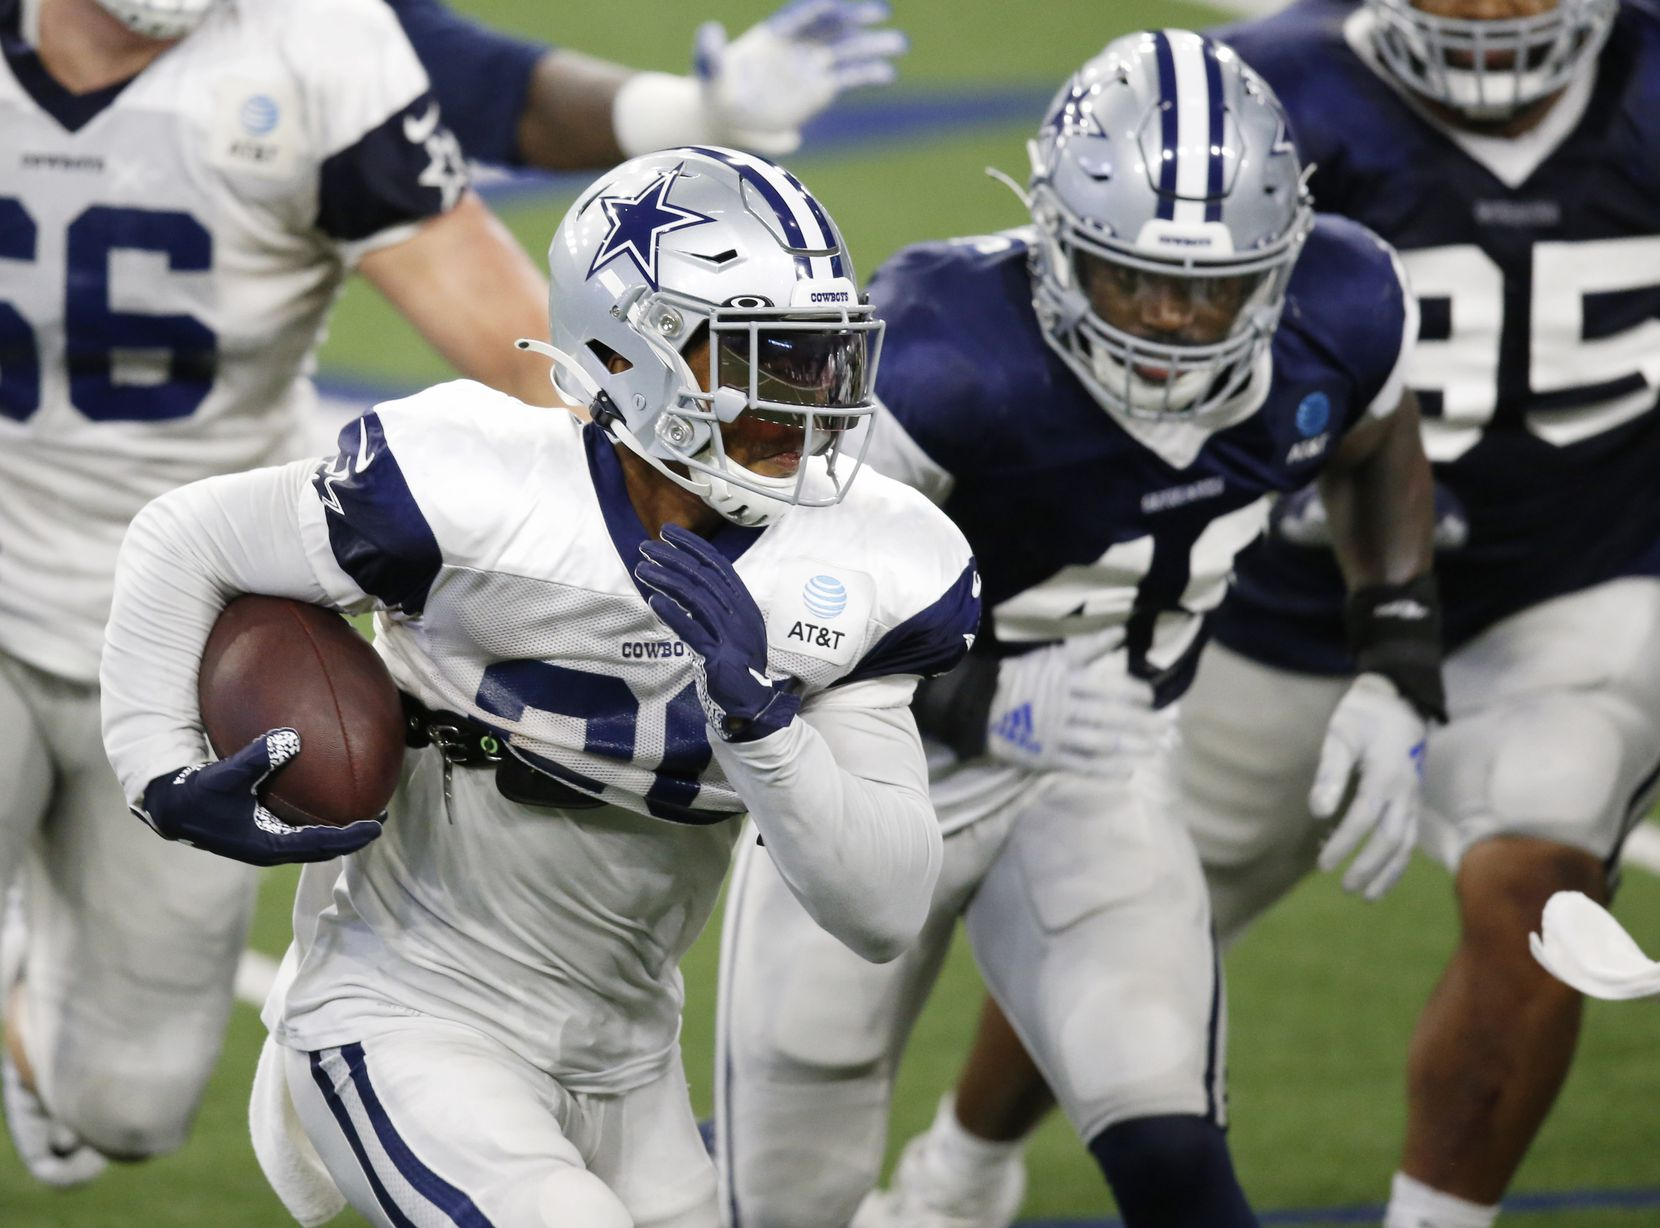 Dallas Cowboys running back Tony Pollard (20) rushes up the field in practice during training camp at the Dallas Cowboys headquarters at The Star in Frisco, Texas on Thursday, August 27, 2020. (Vernon Bryant/The Dallas Morning News)